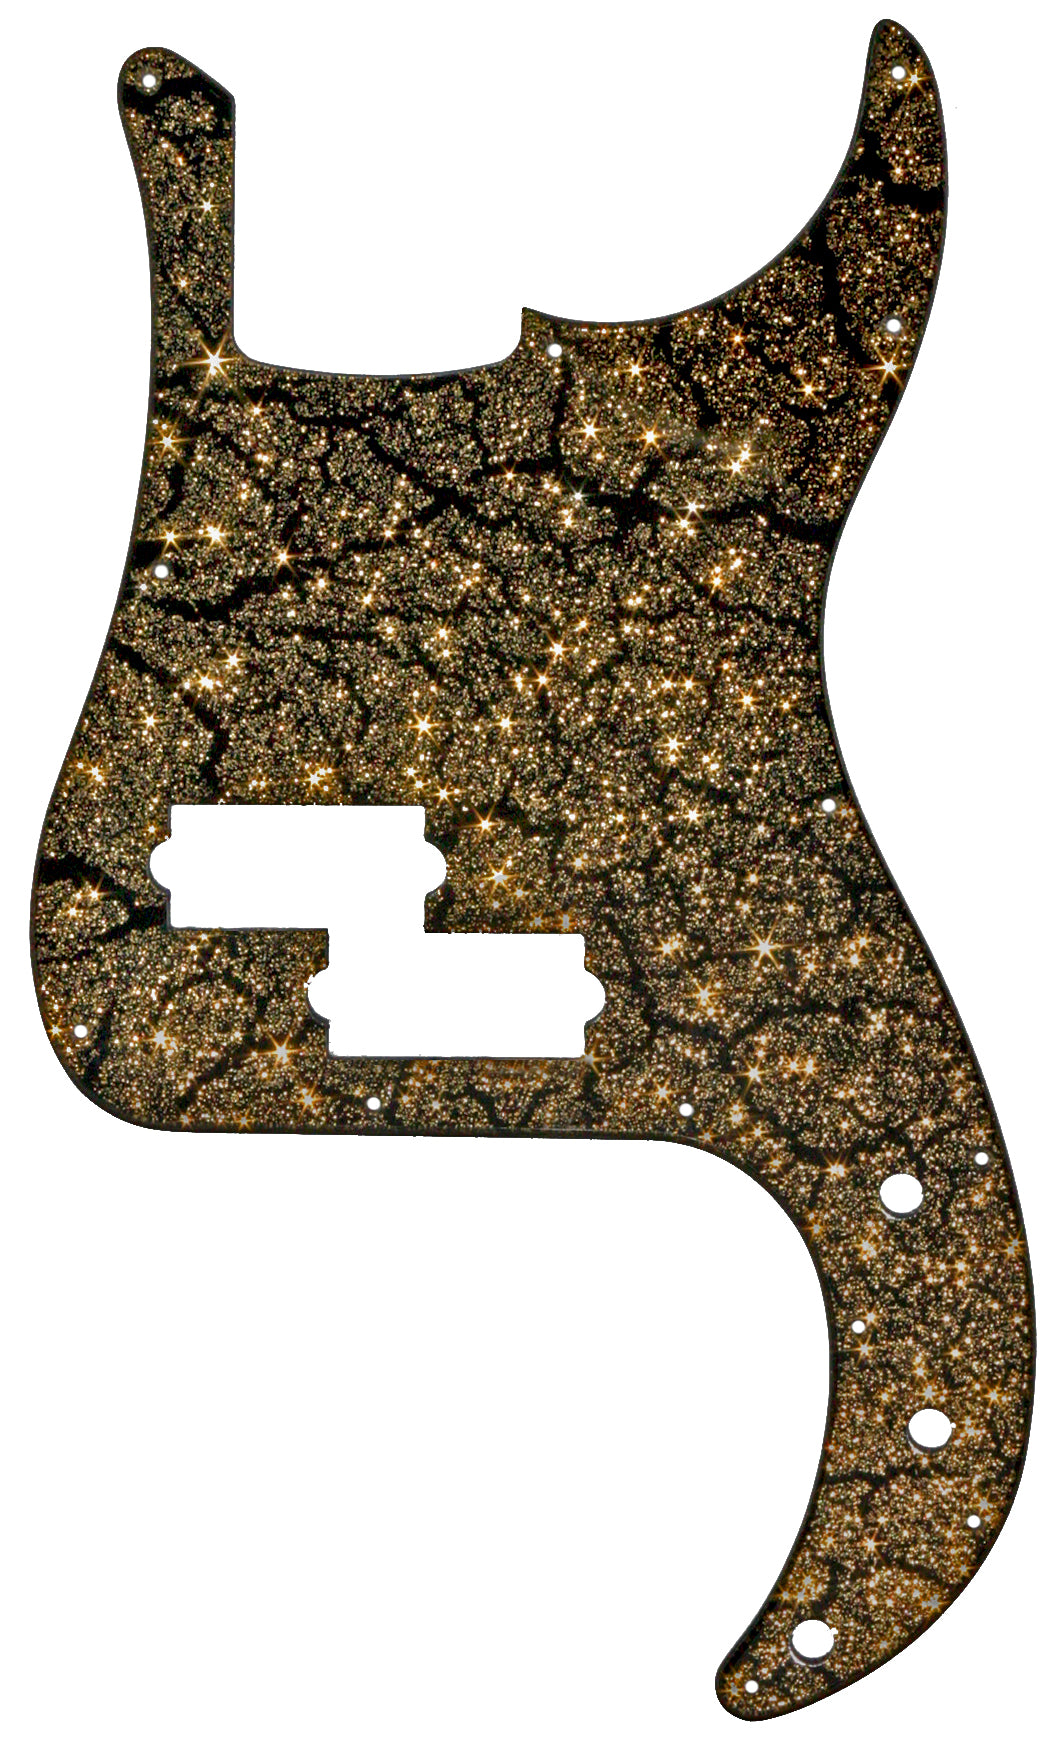 Fender Precision Bass Pickguard Black Crackle Gold Sparkle